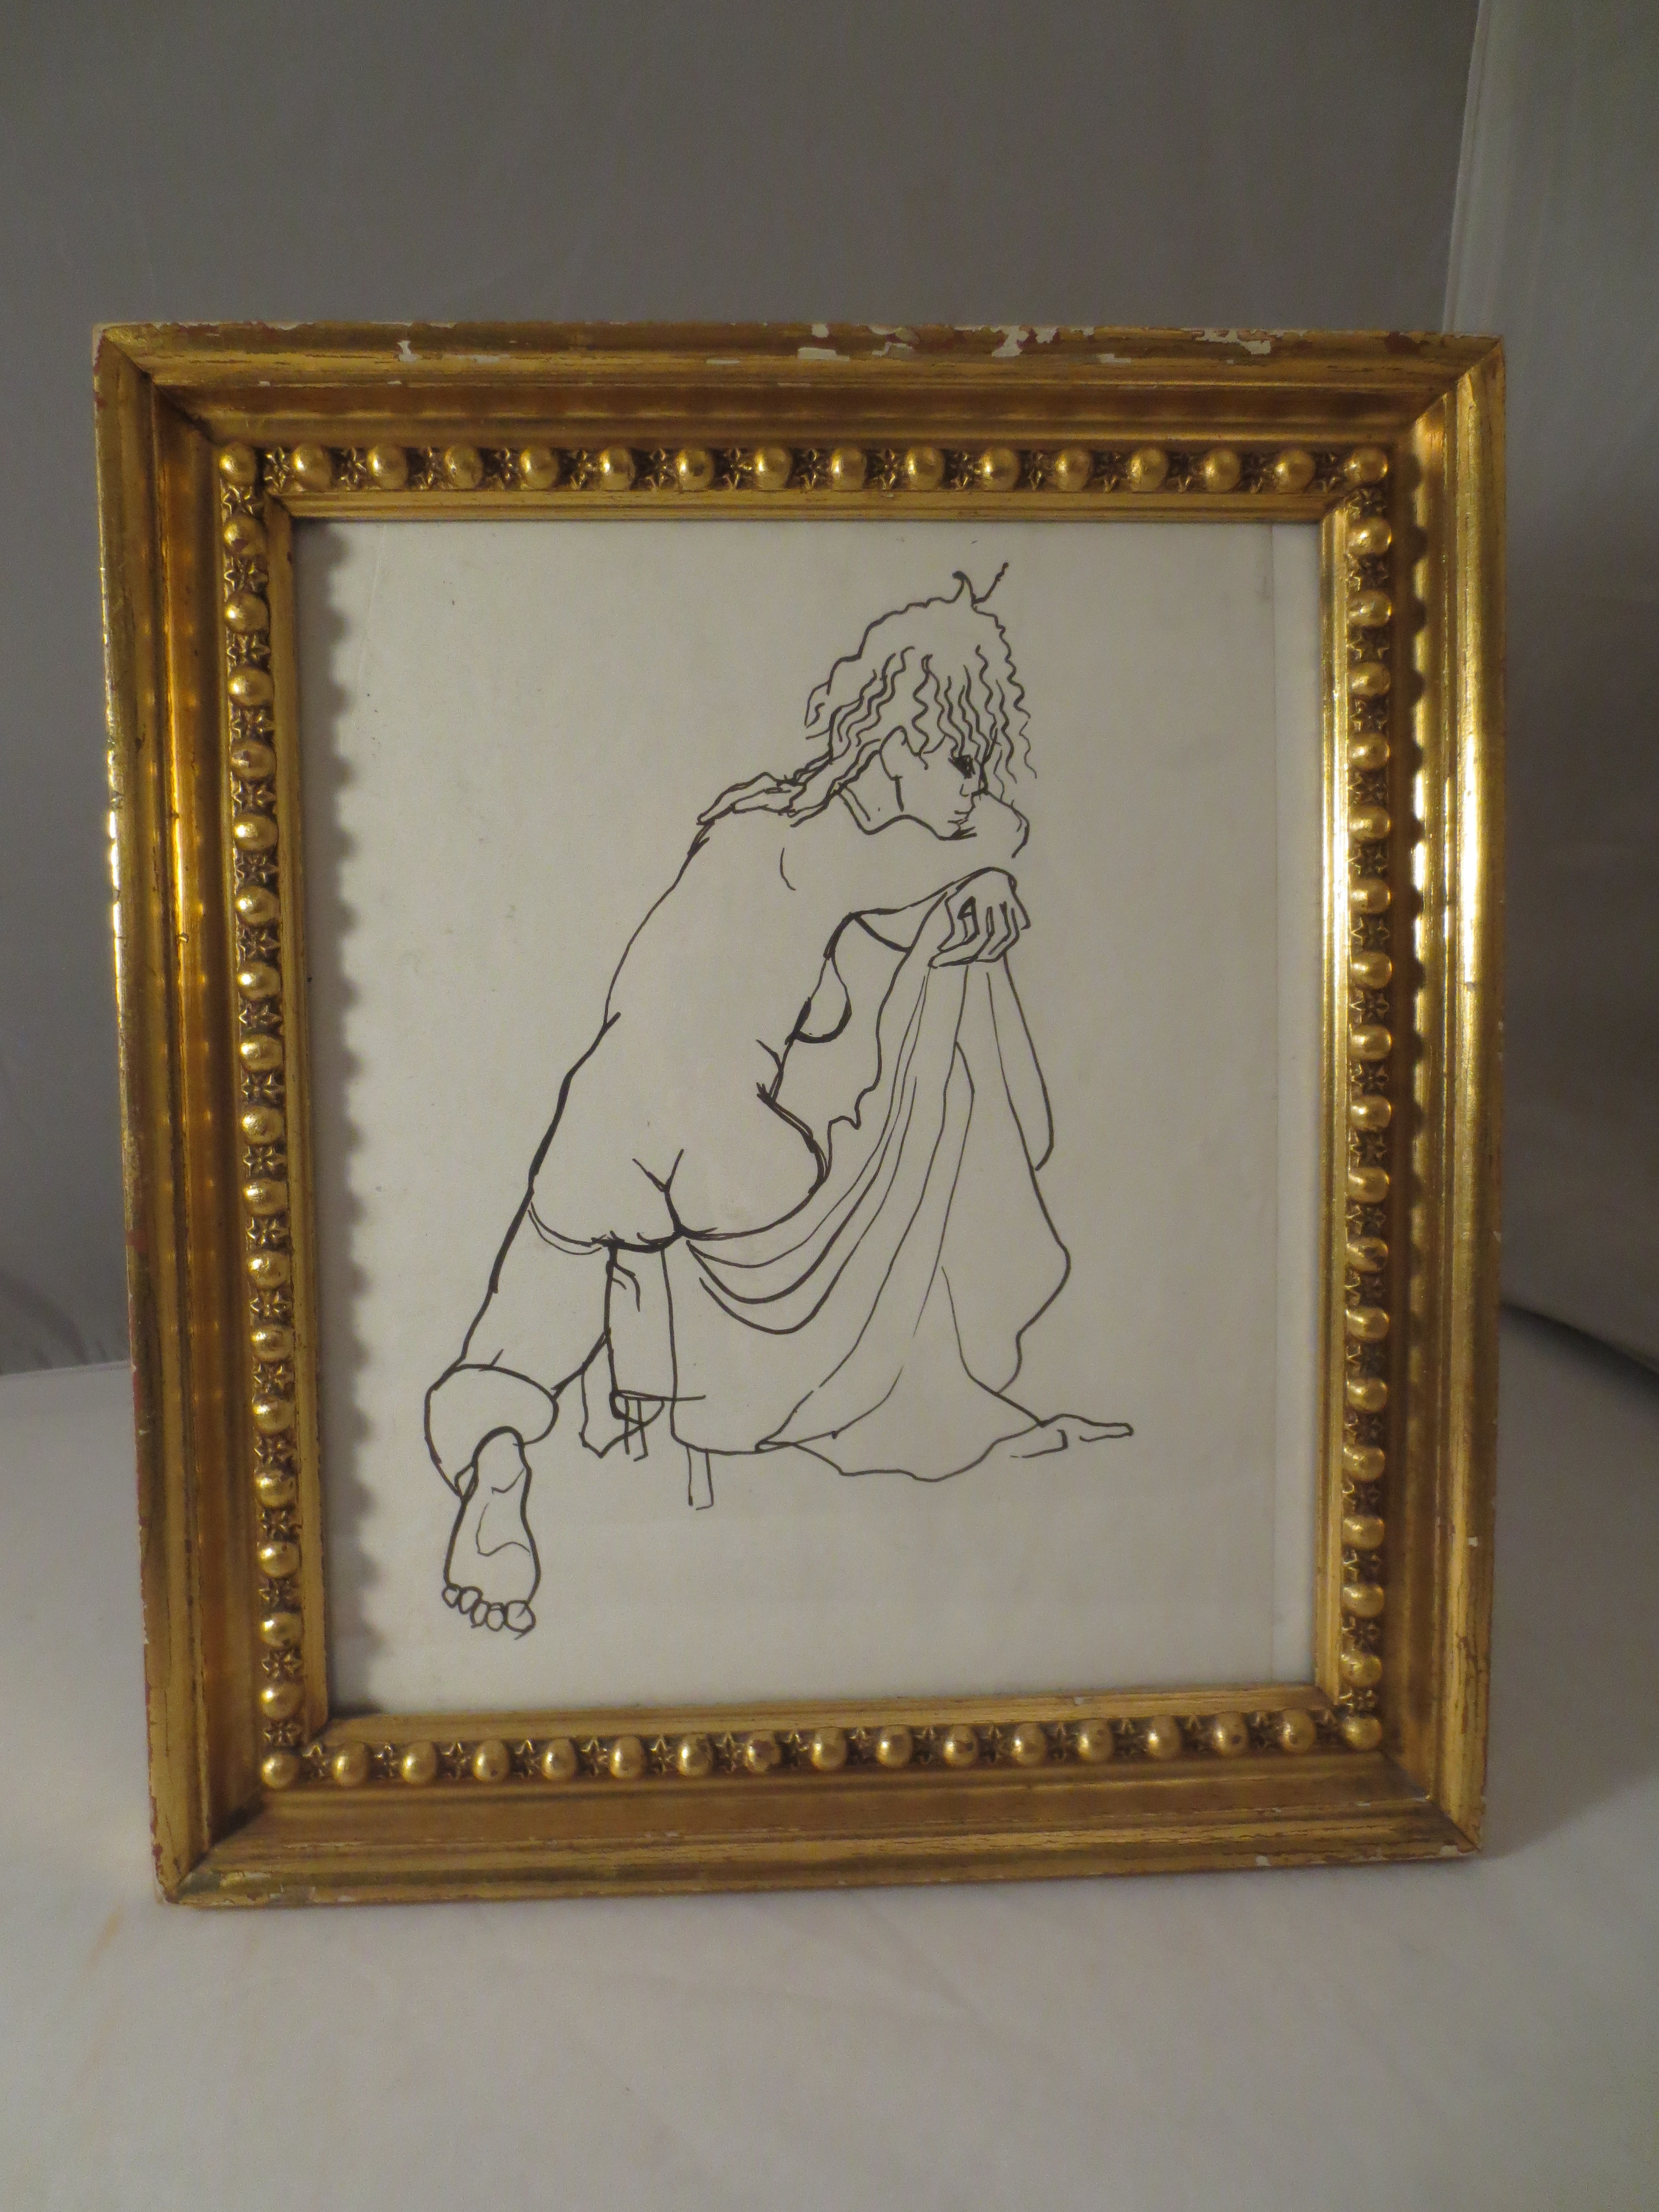 Pen and Ink Figure Study In Beaded Gilt Frame